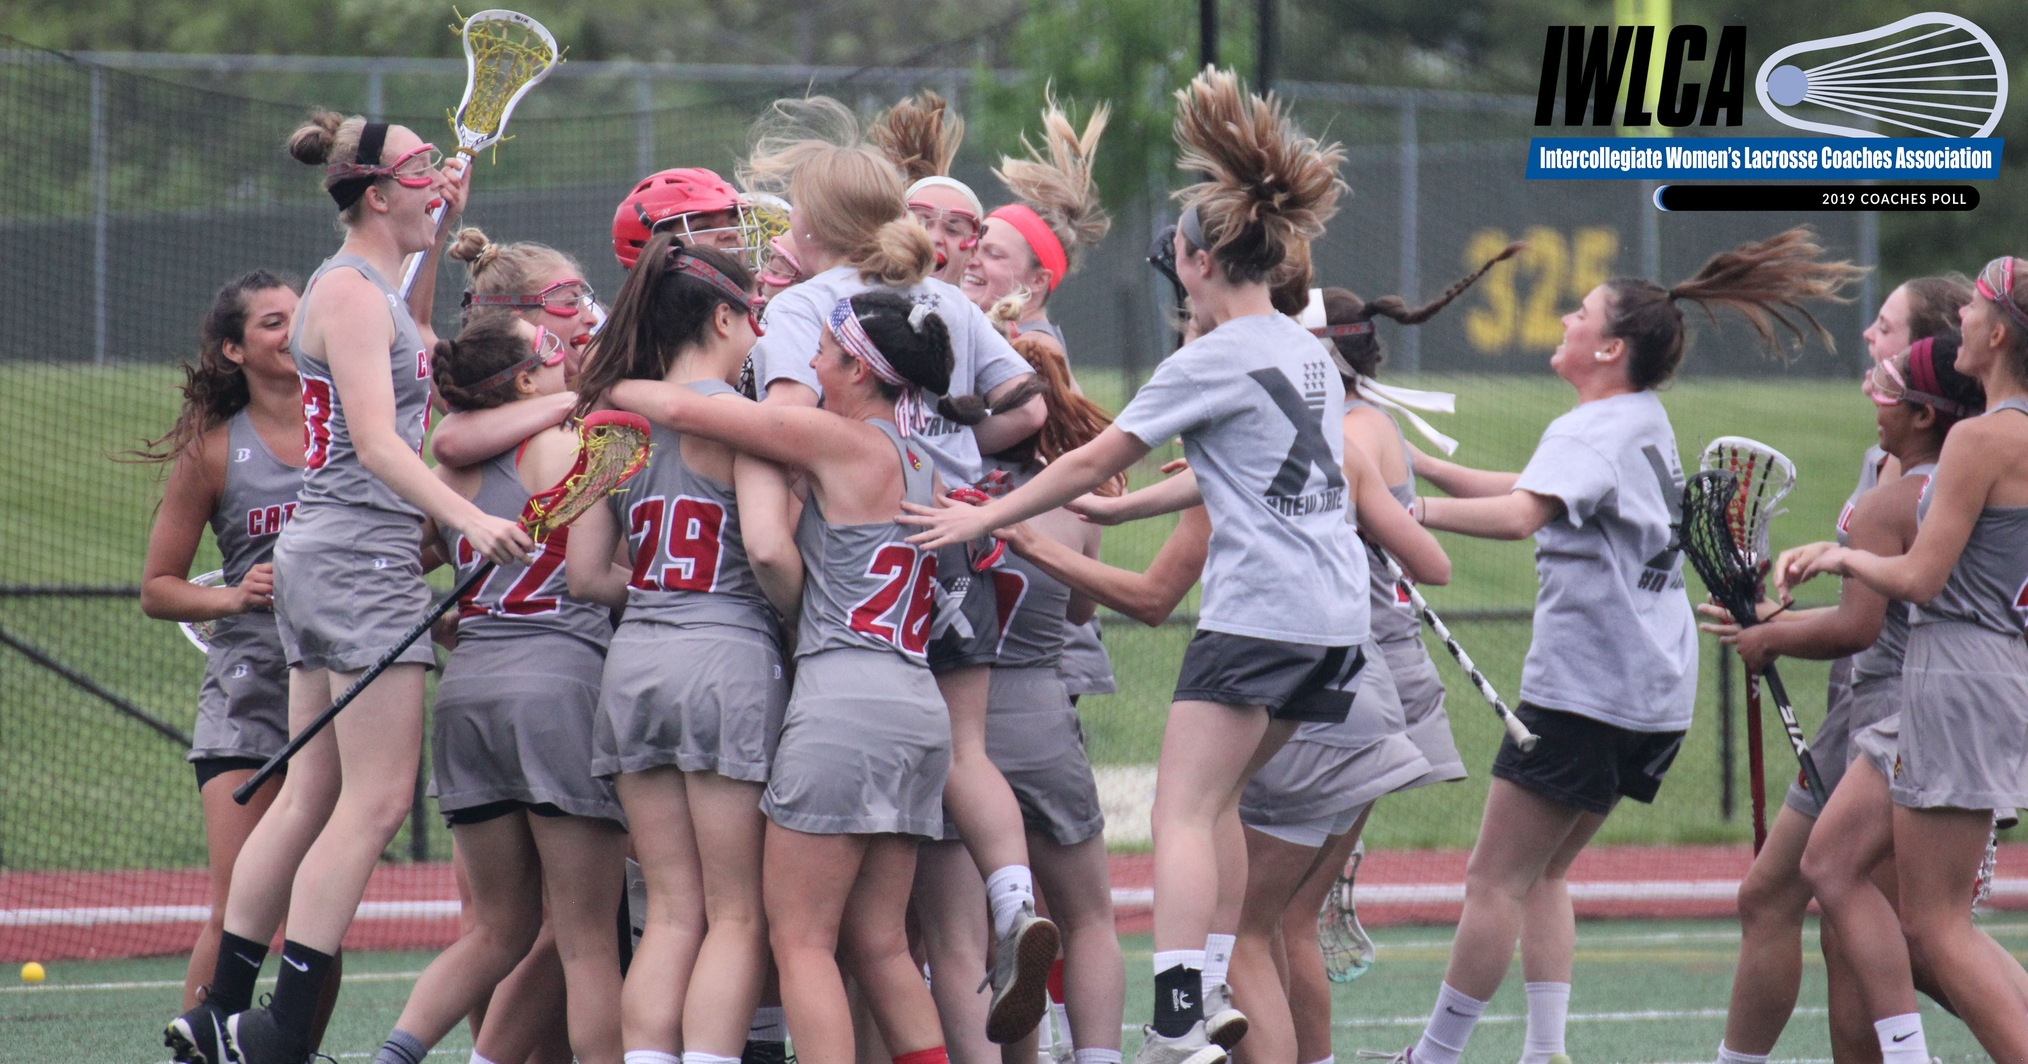 Cardinals Ranked at No. 15 in IWLCA Preseason Poll